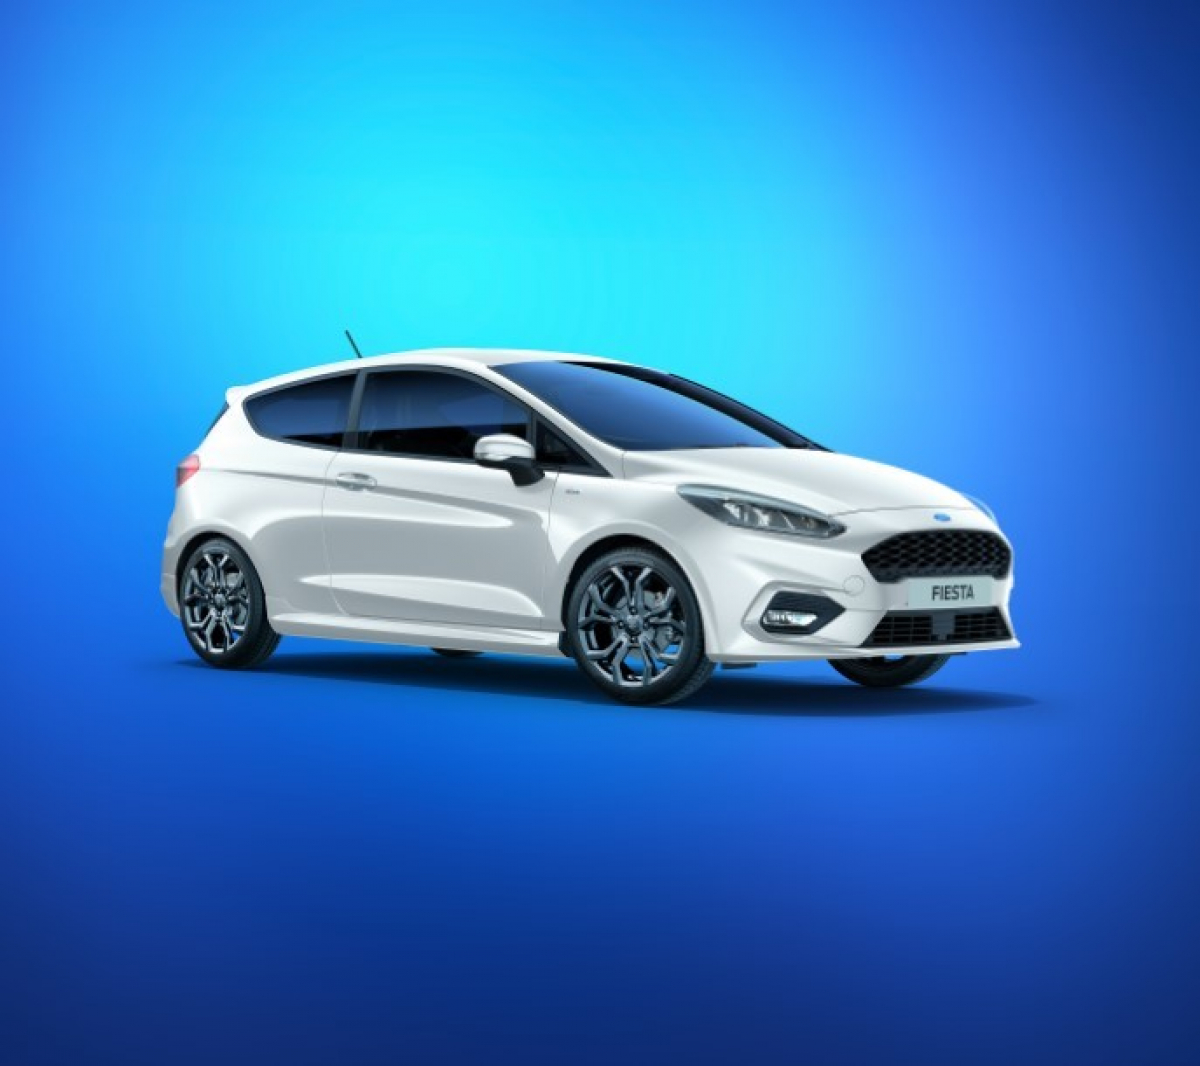 Ford Push for Their Electrified Future Image 4